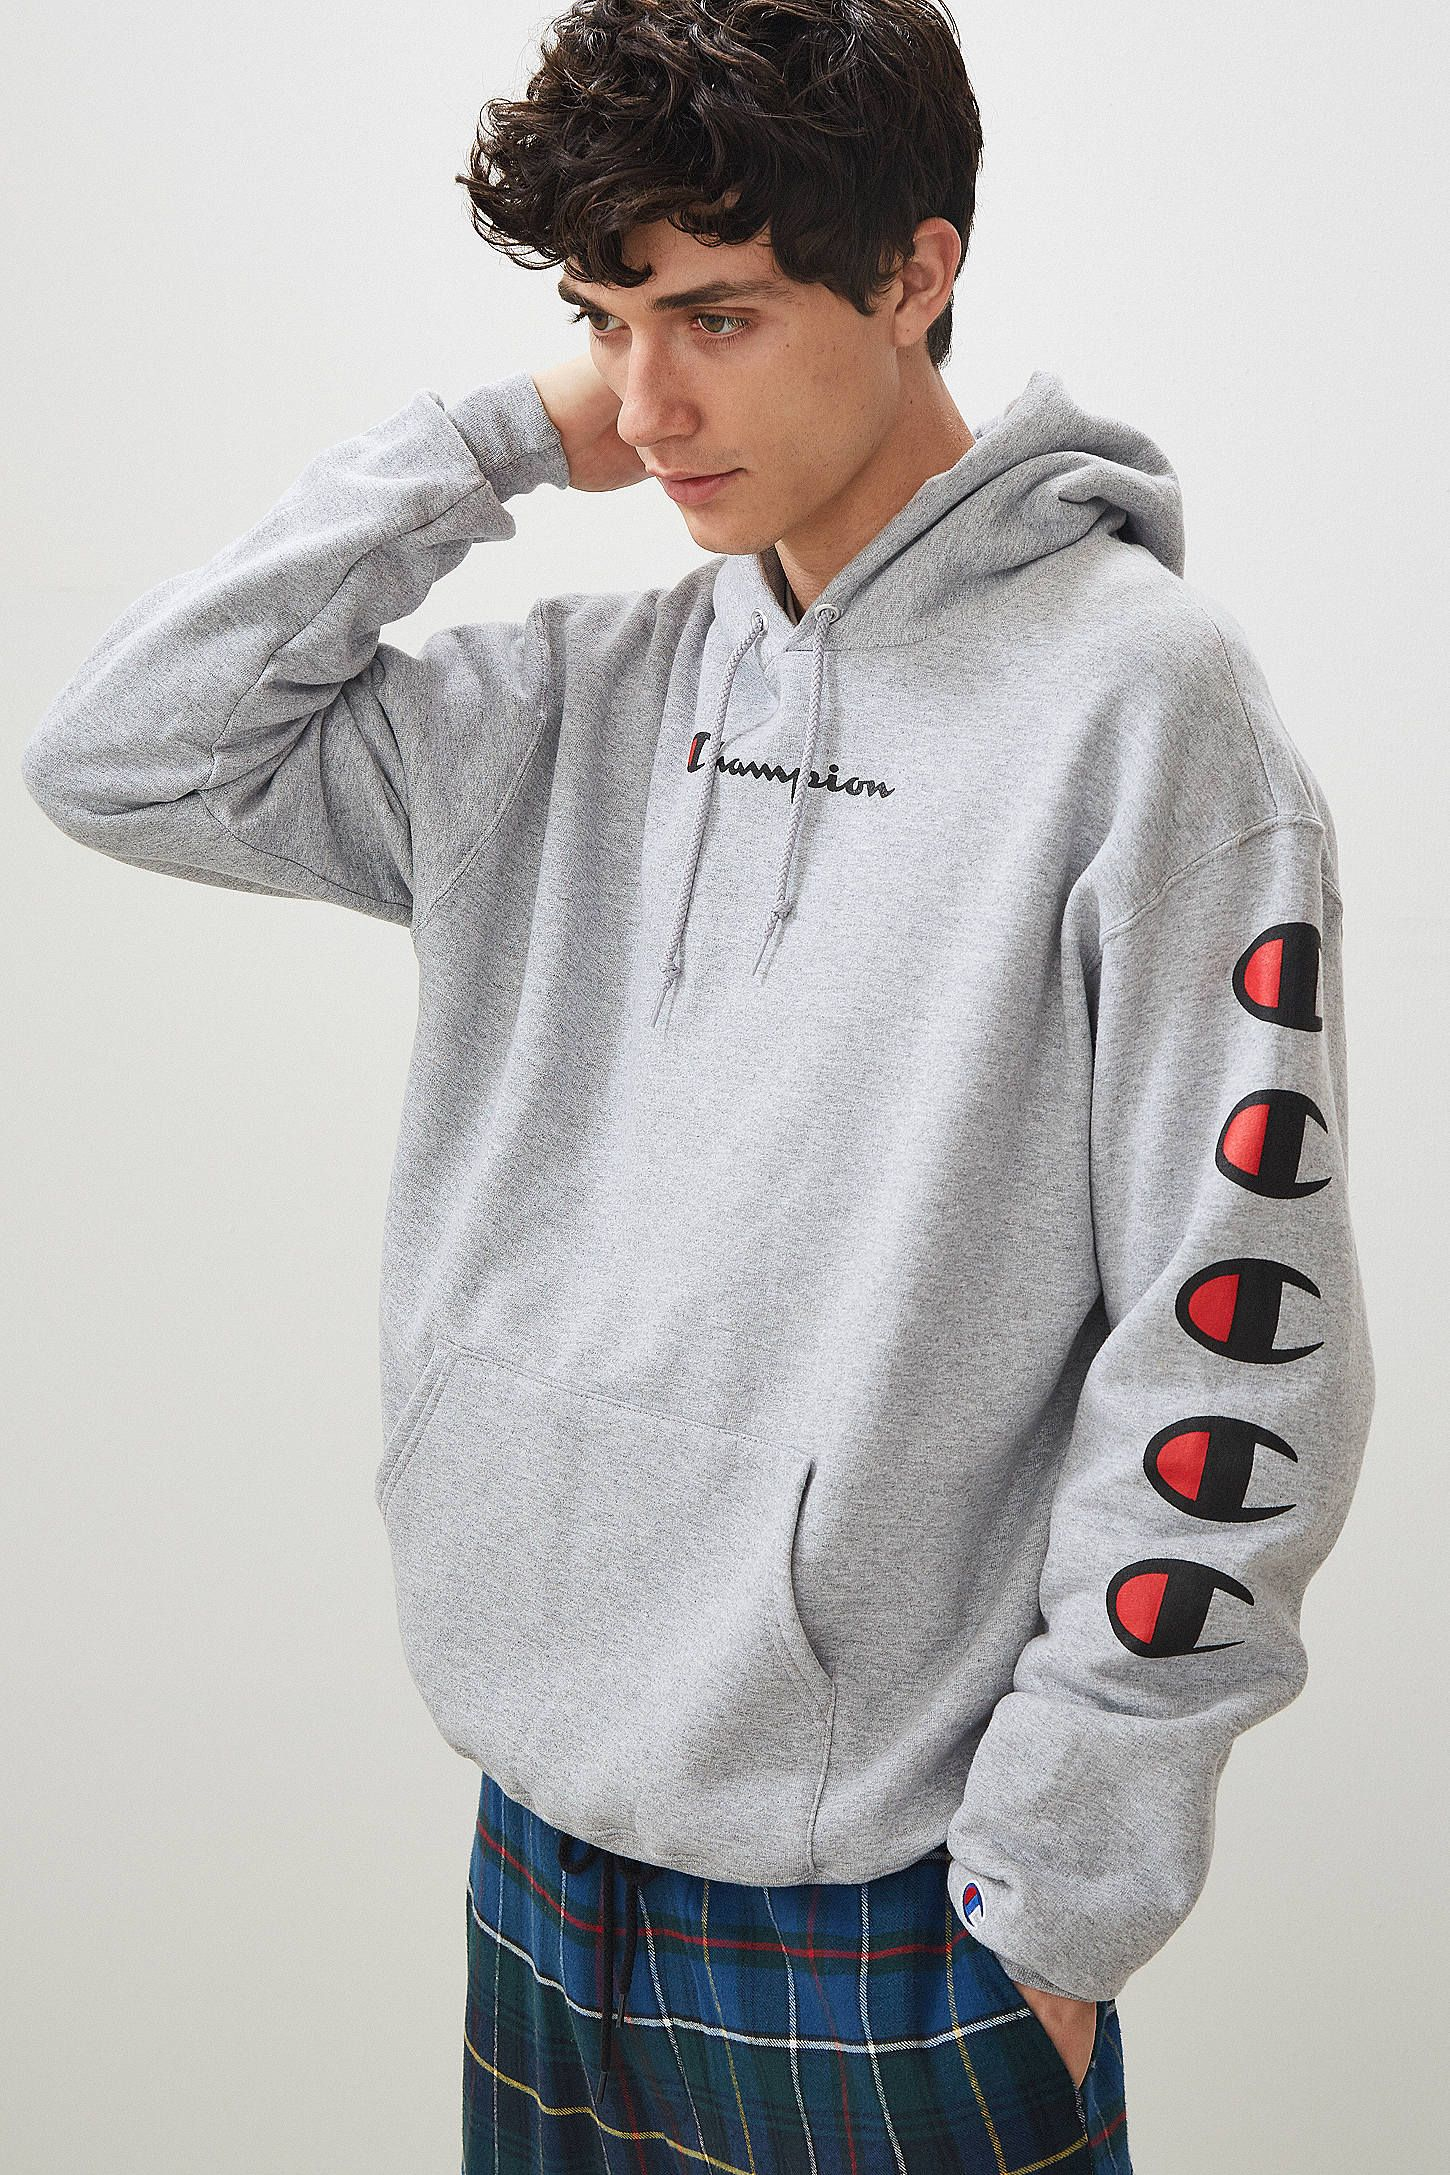 Shop Champion Repeat Eco Hoodie Sweatshirt at Urban Outfitters today. We  carry all the latest styles 70280b870366